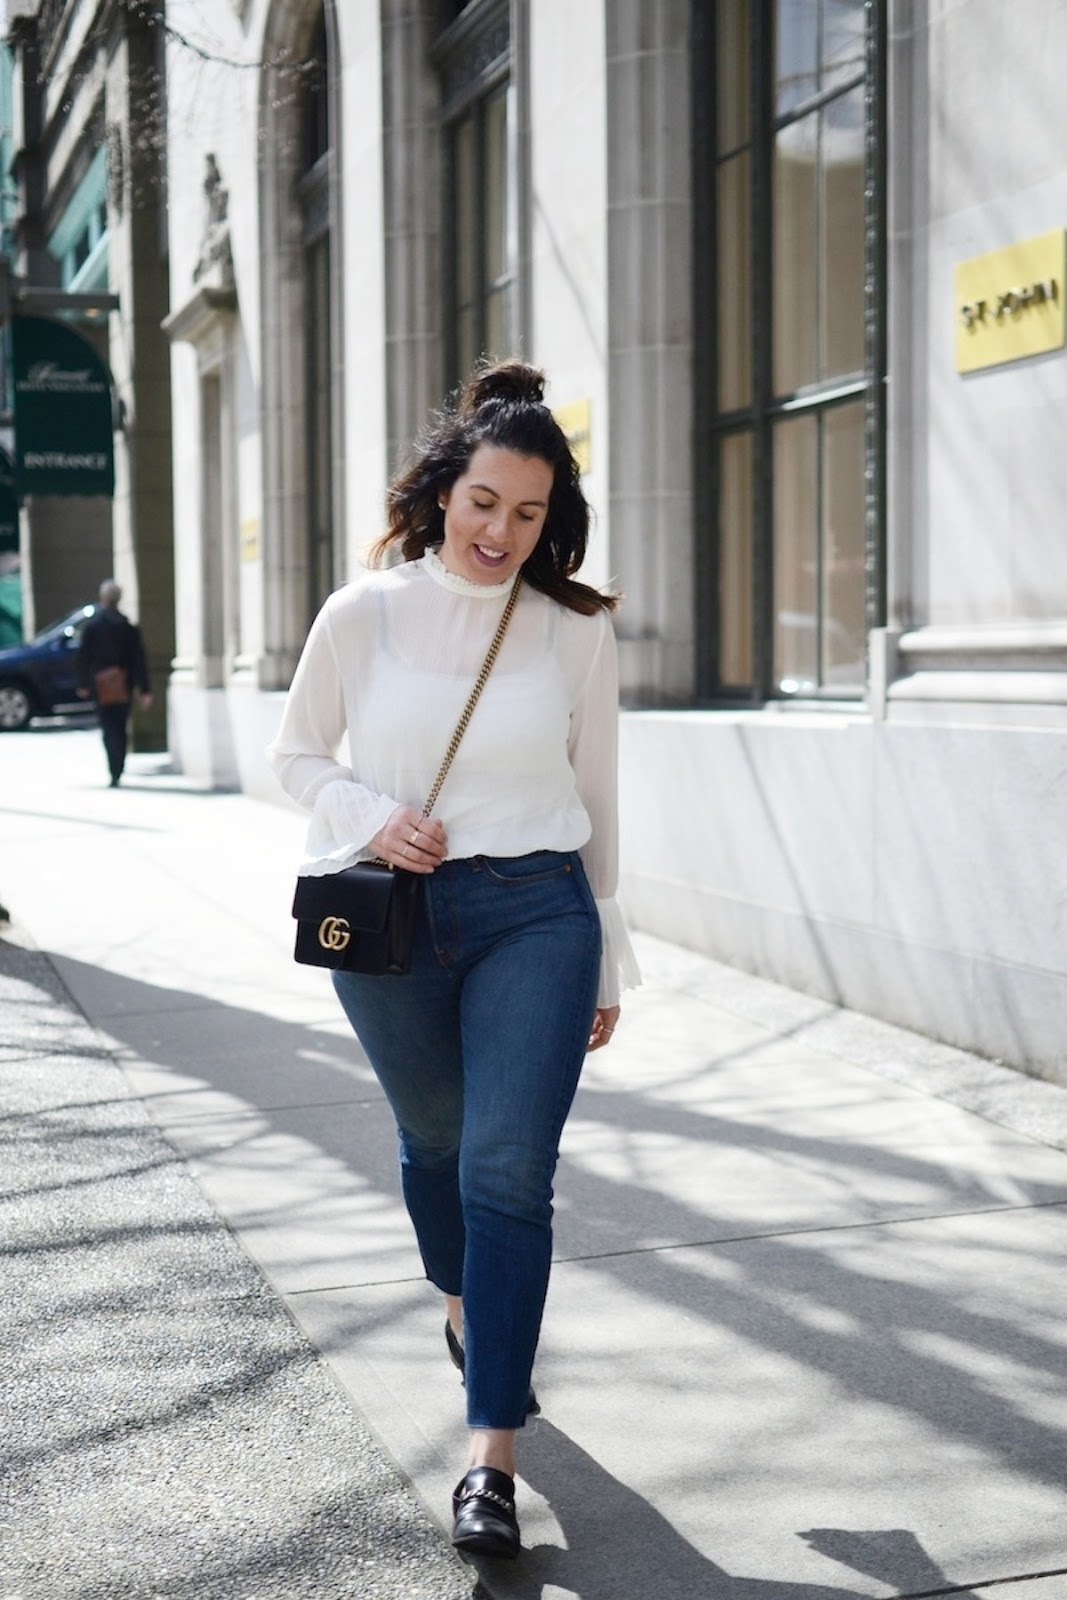 HM flared sleeve blouse outfit levis wedgie jeans gucci marmont bag vancouver fashion blogger 5